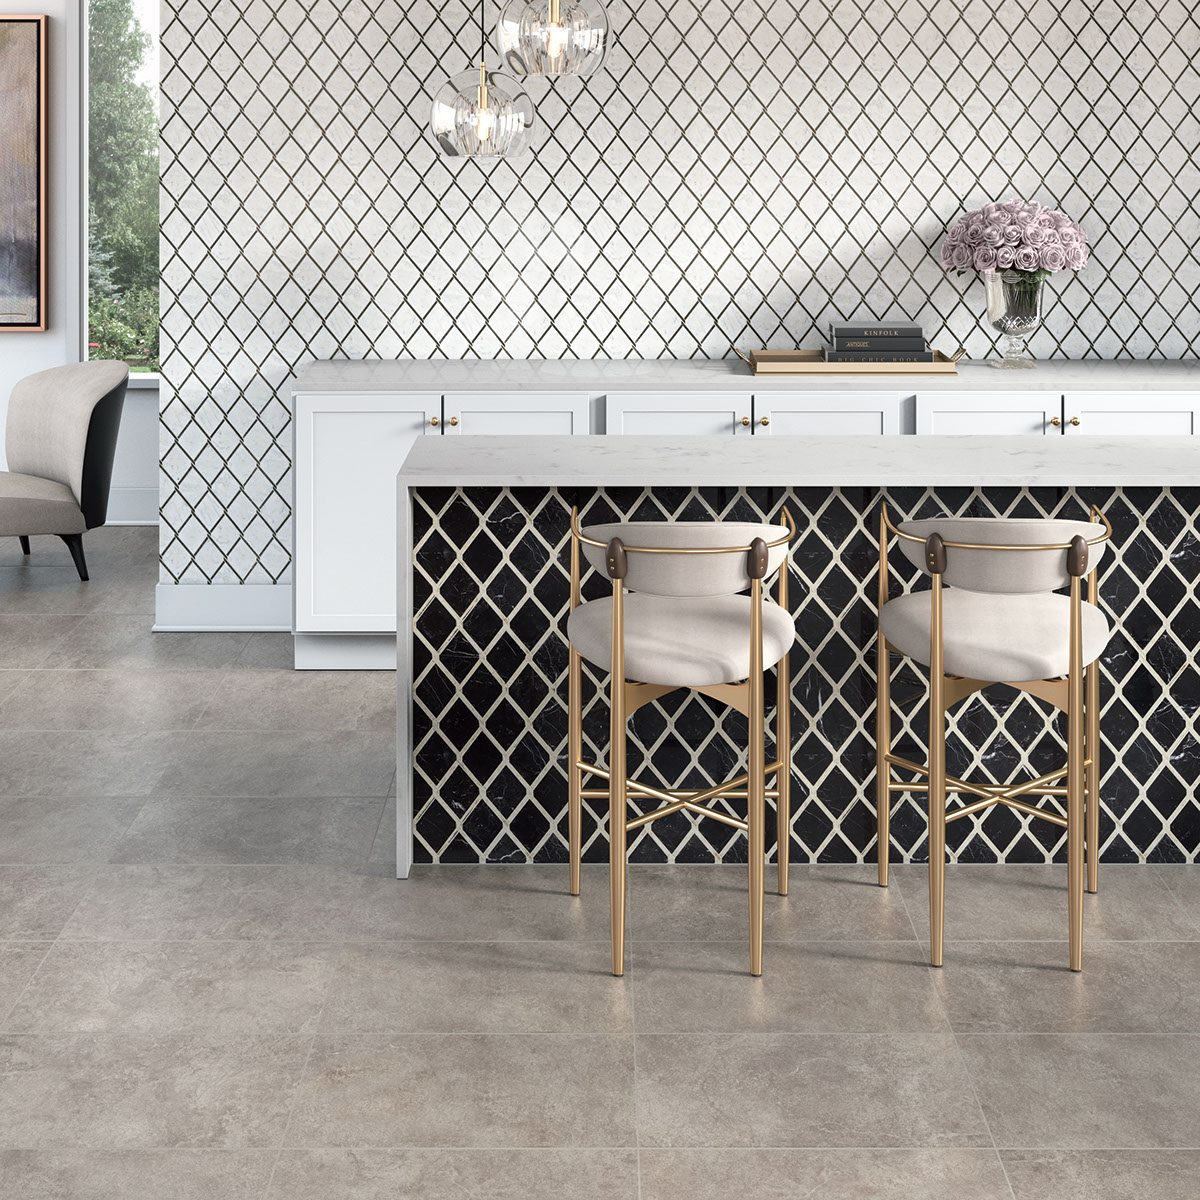 Stone flooring in home | The Carpet Stop